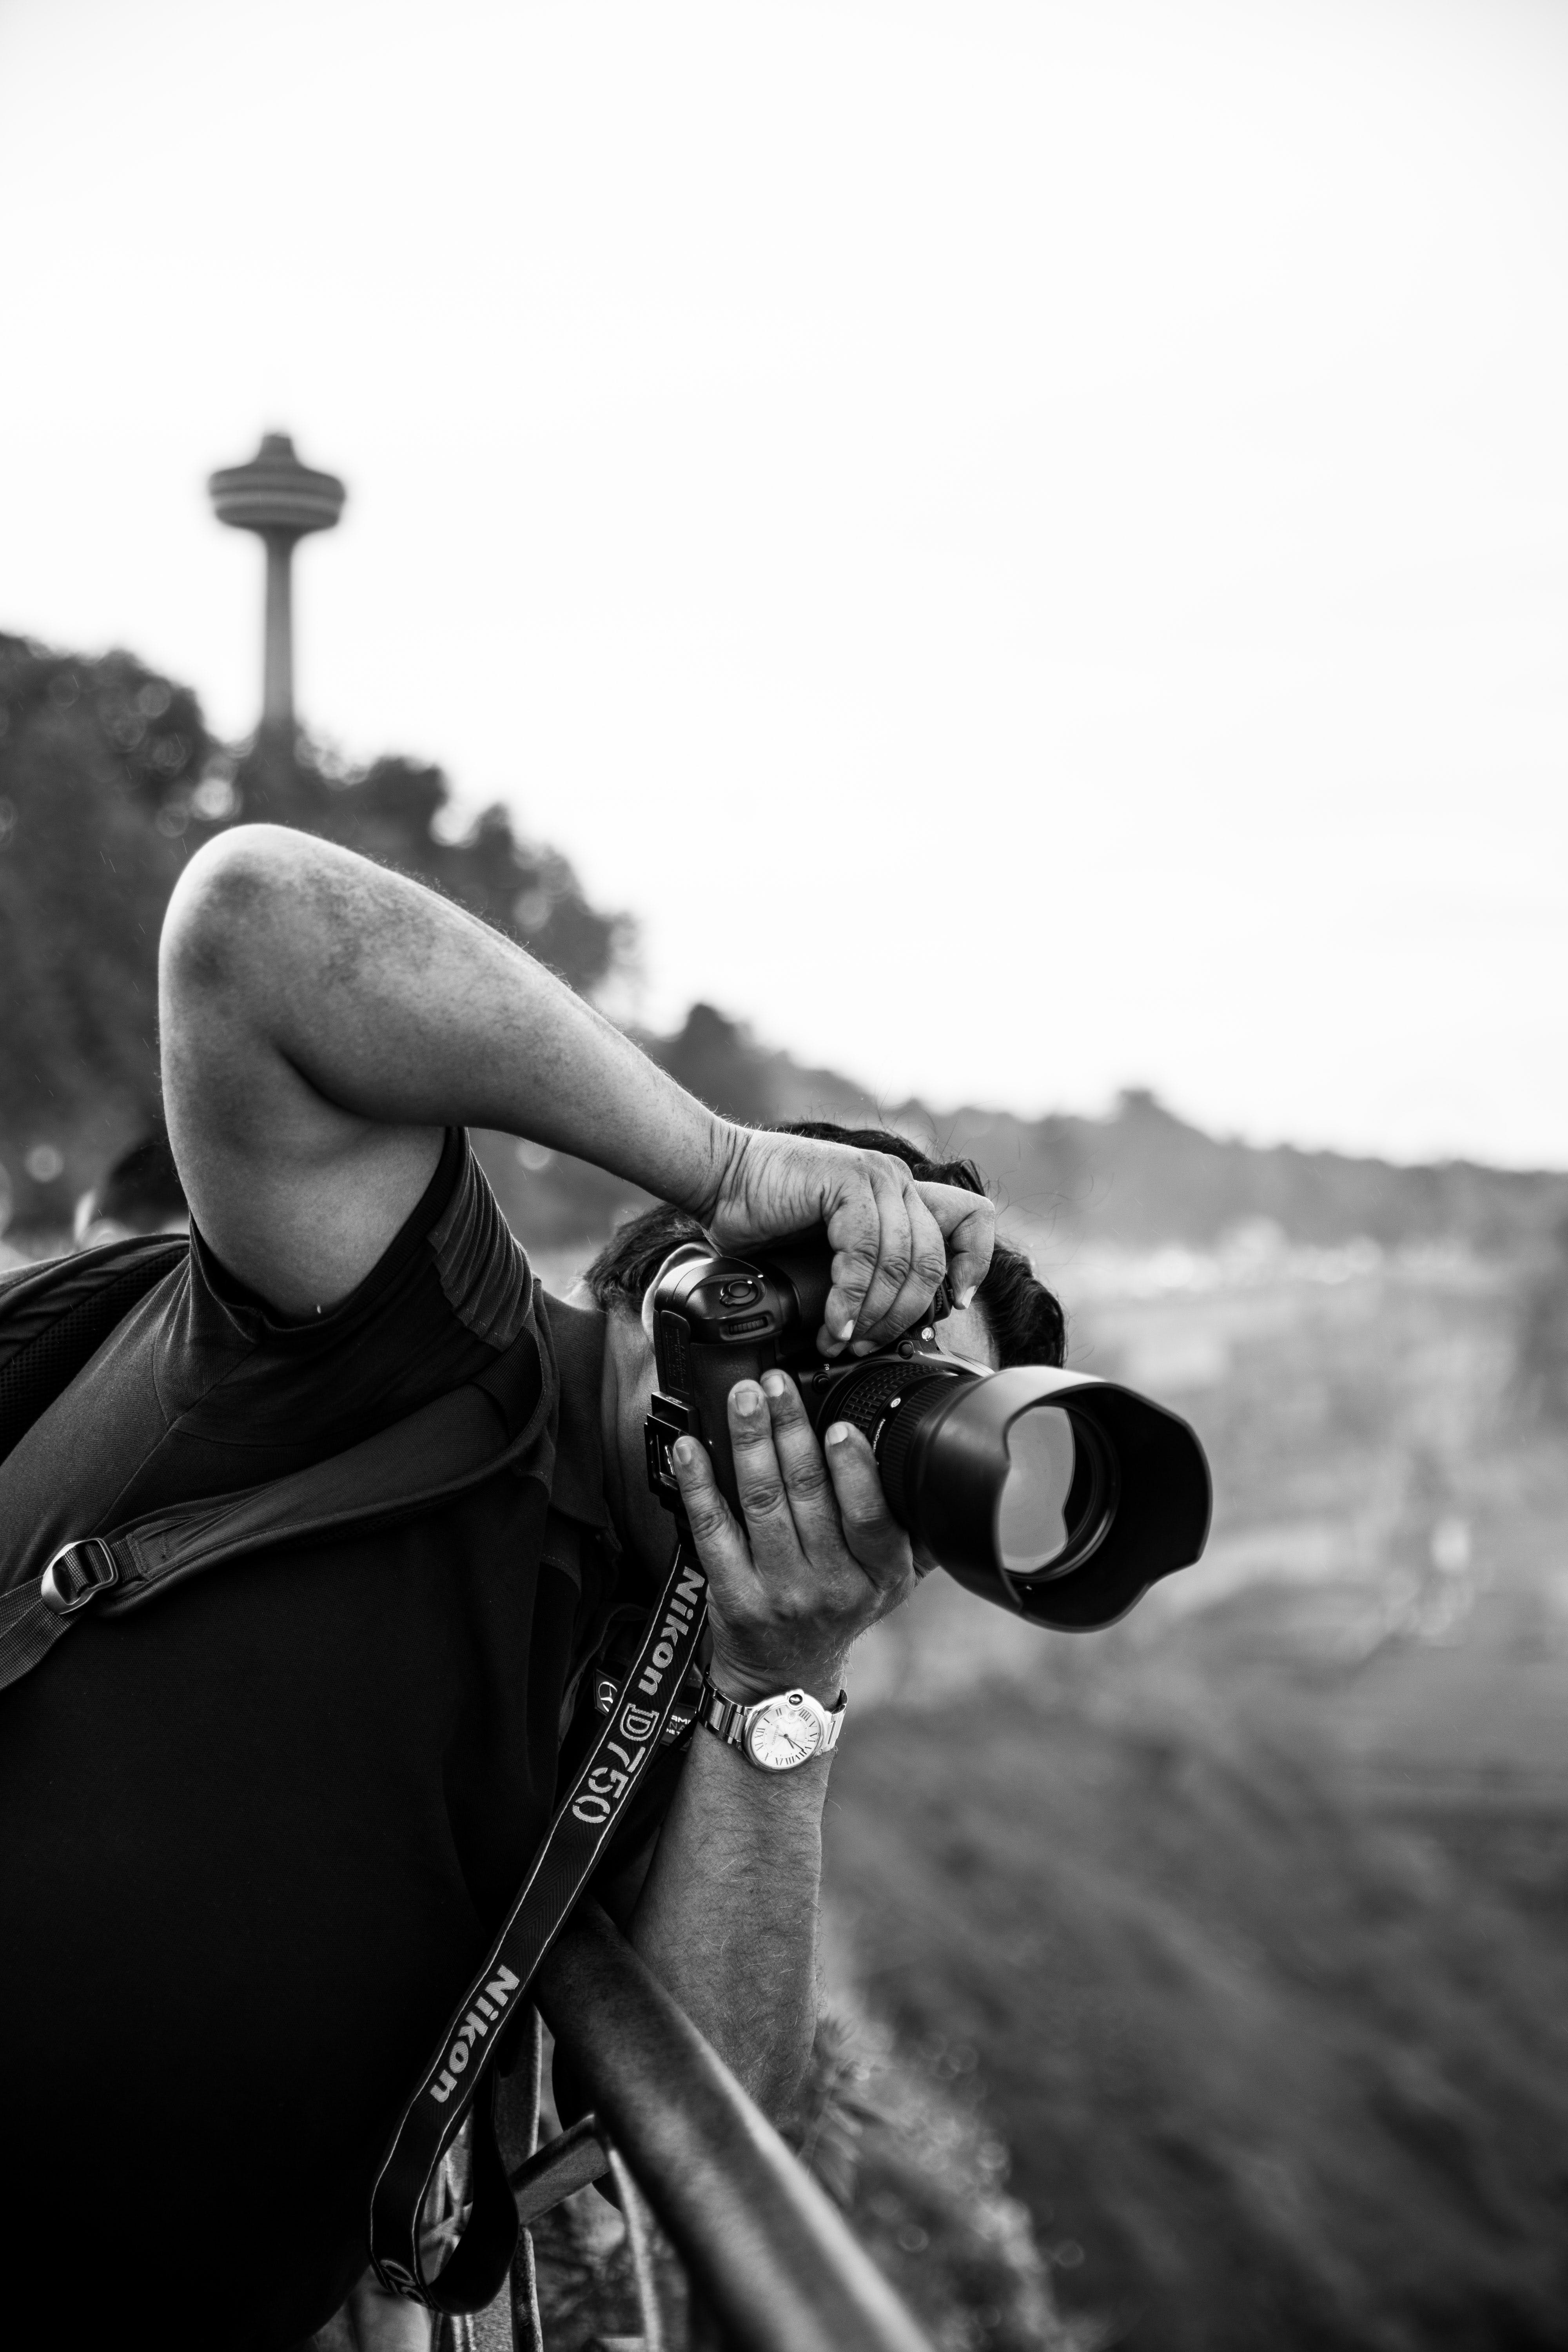 Monochrome Photography of Man Taking Picture